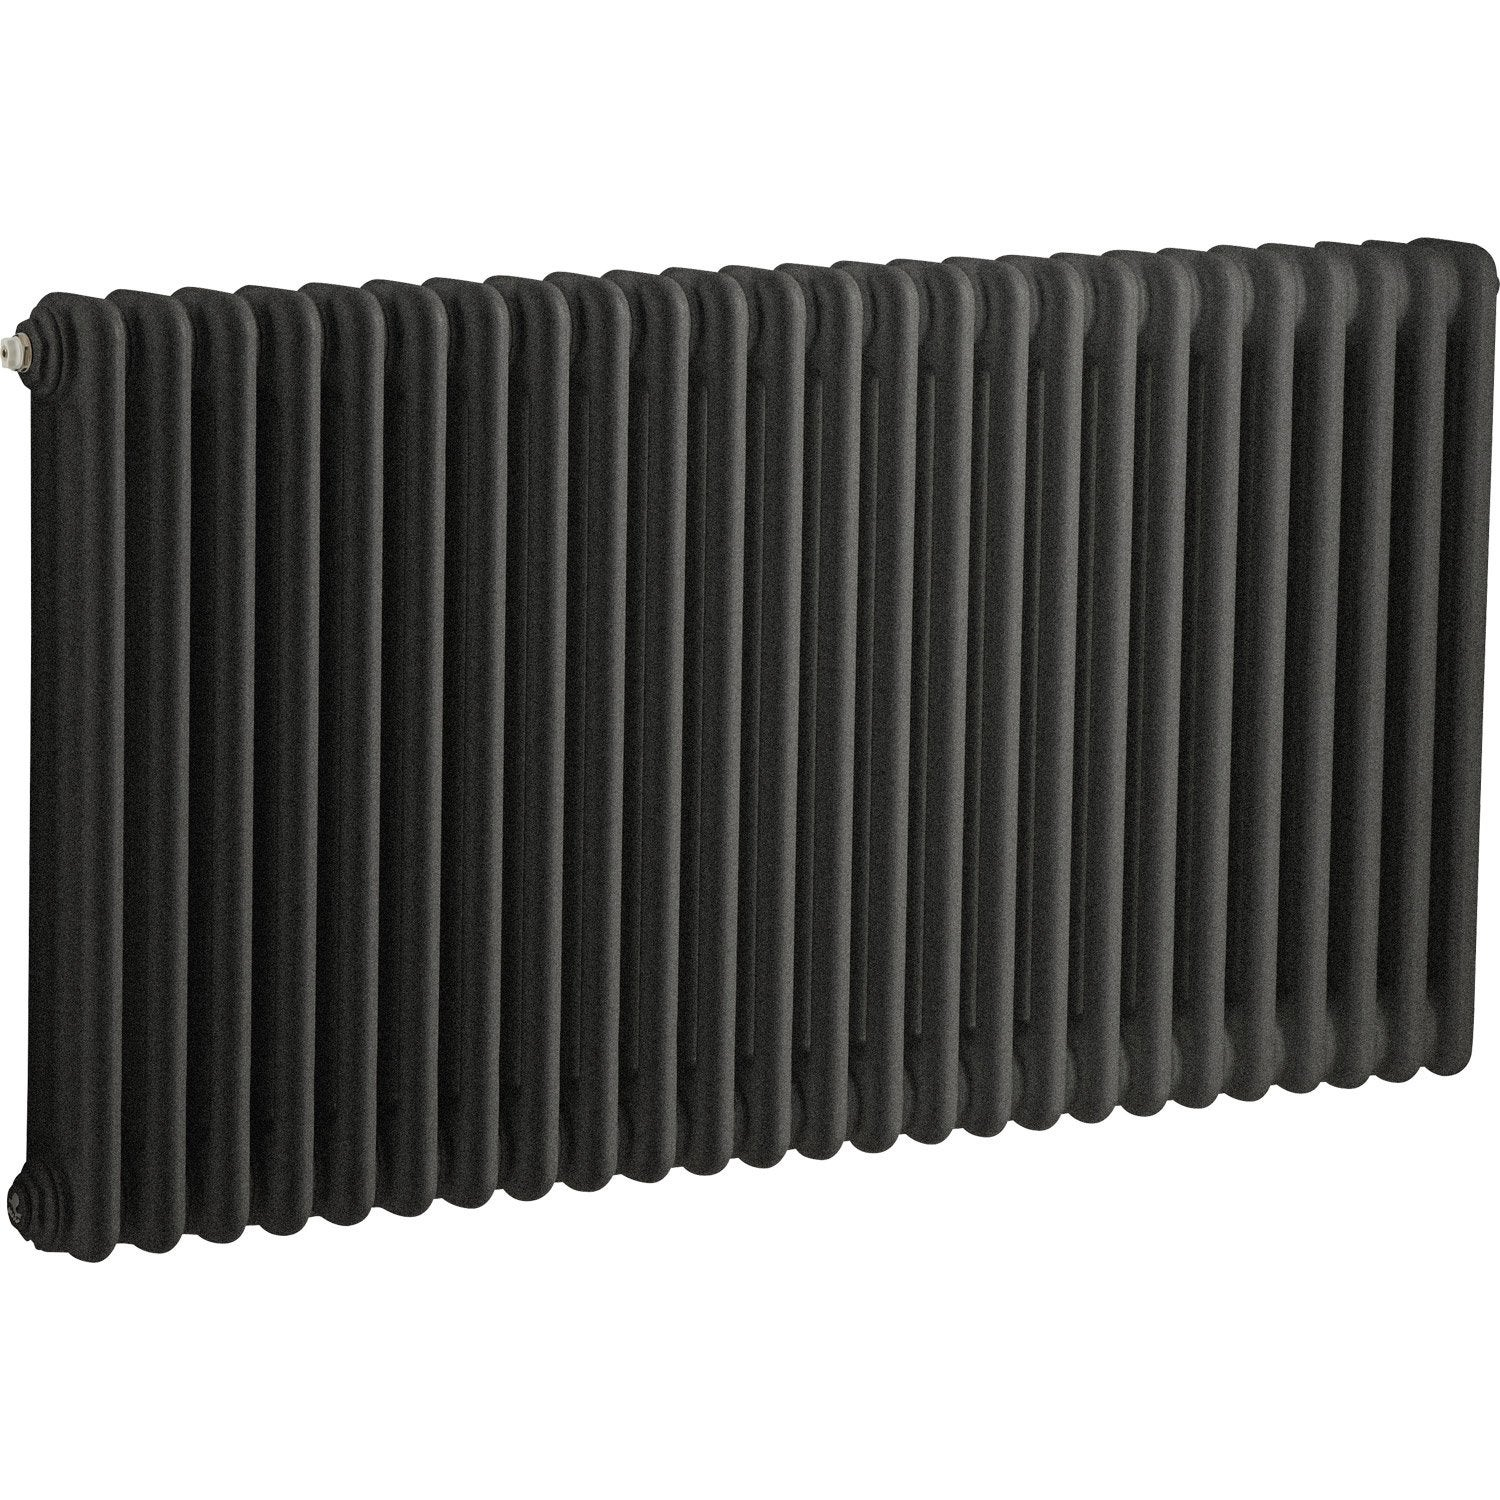 radiateur chauffage central tesi noir cm 1515 w leroy merlin. Black Bedroom Furniture Sets. Home Design Ideas